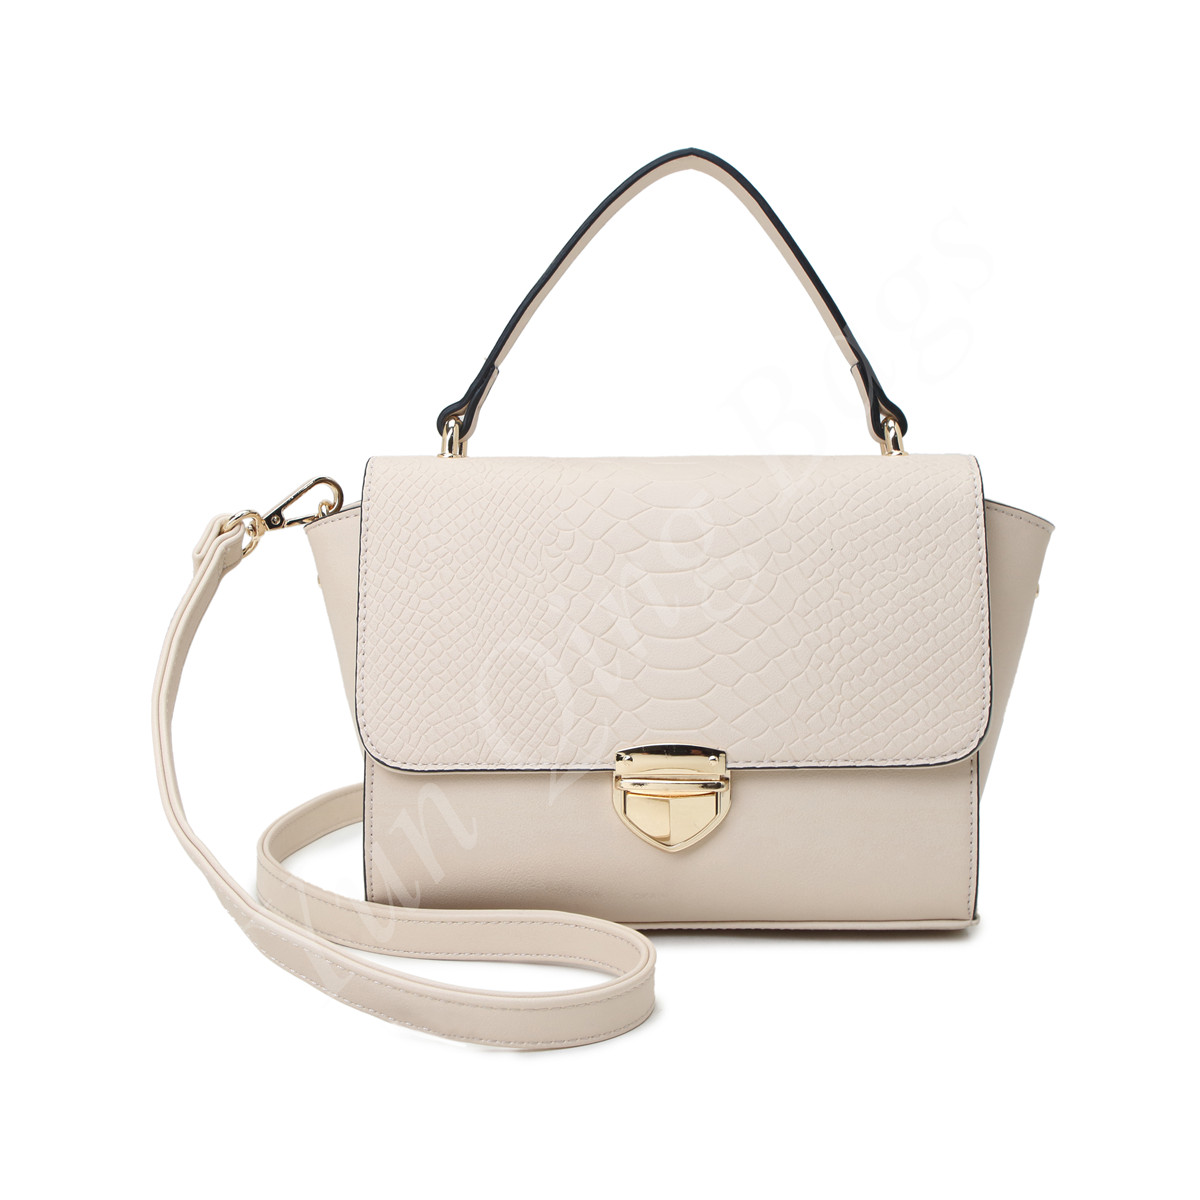 Woman Handbag with Snake Embossed Flap